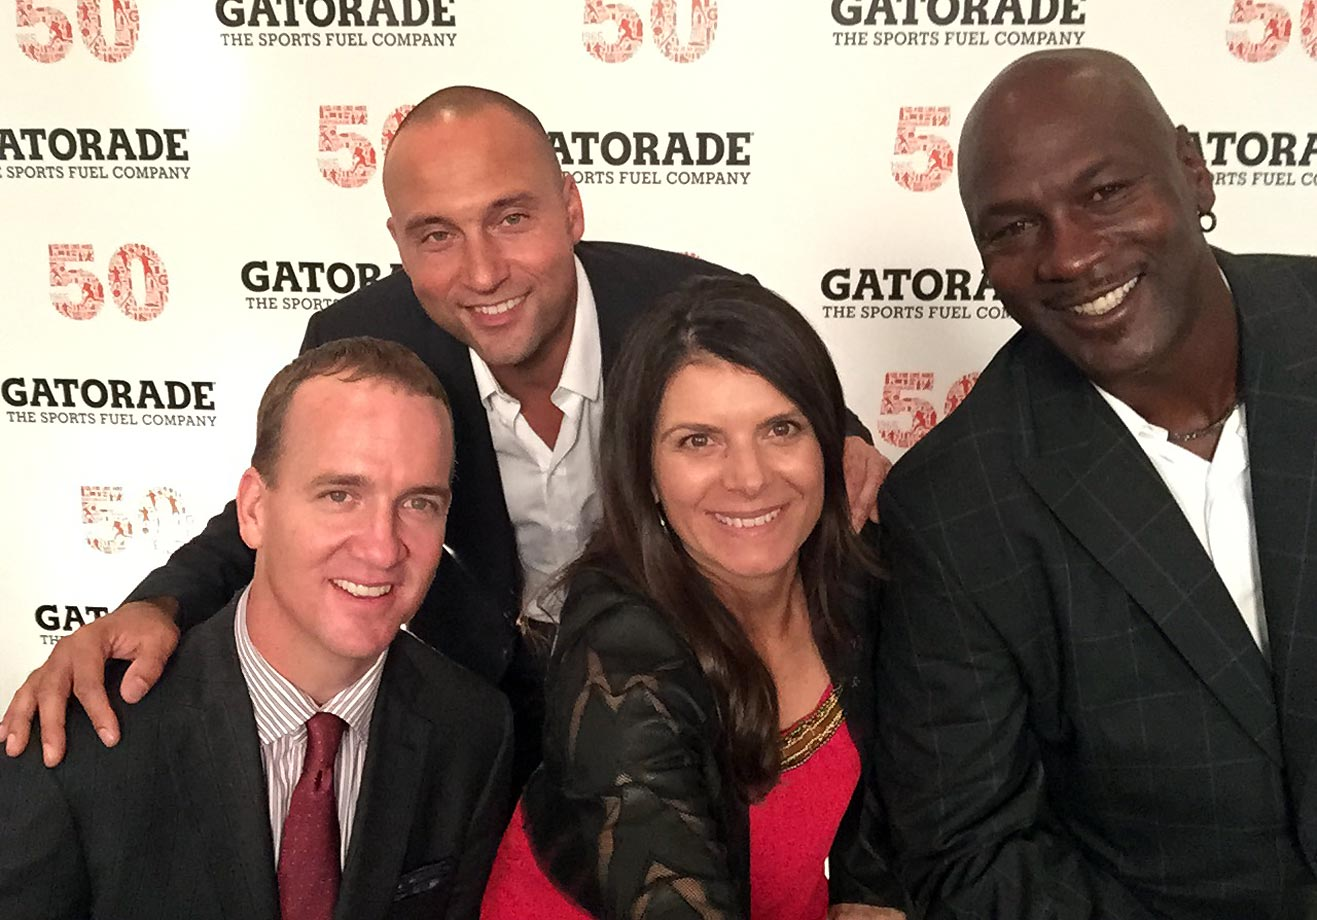 Mia Hamm took this star-studded selfie of herself, Peyton Manning, Derek Jeter and Michael Jordan at the Gatorade 50th Anniversary Dinner at The Sanctuary Resort Spa in Scottsdale, Ariz., on Super Bowl weekend.